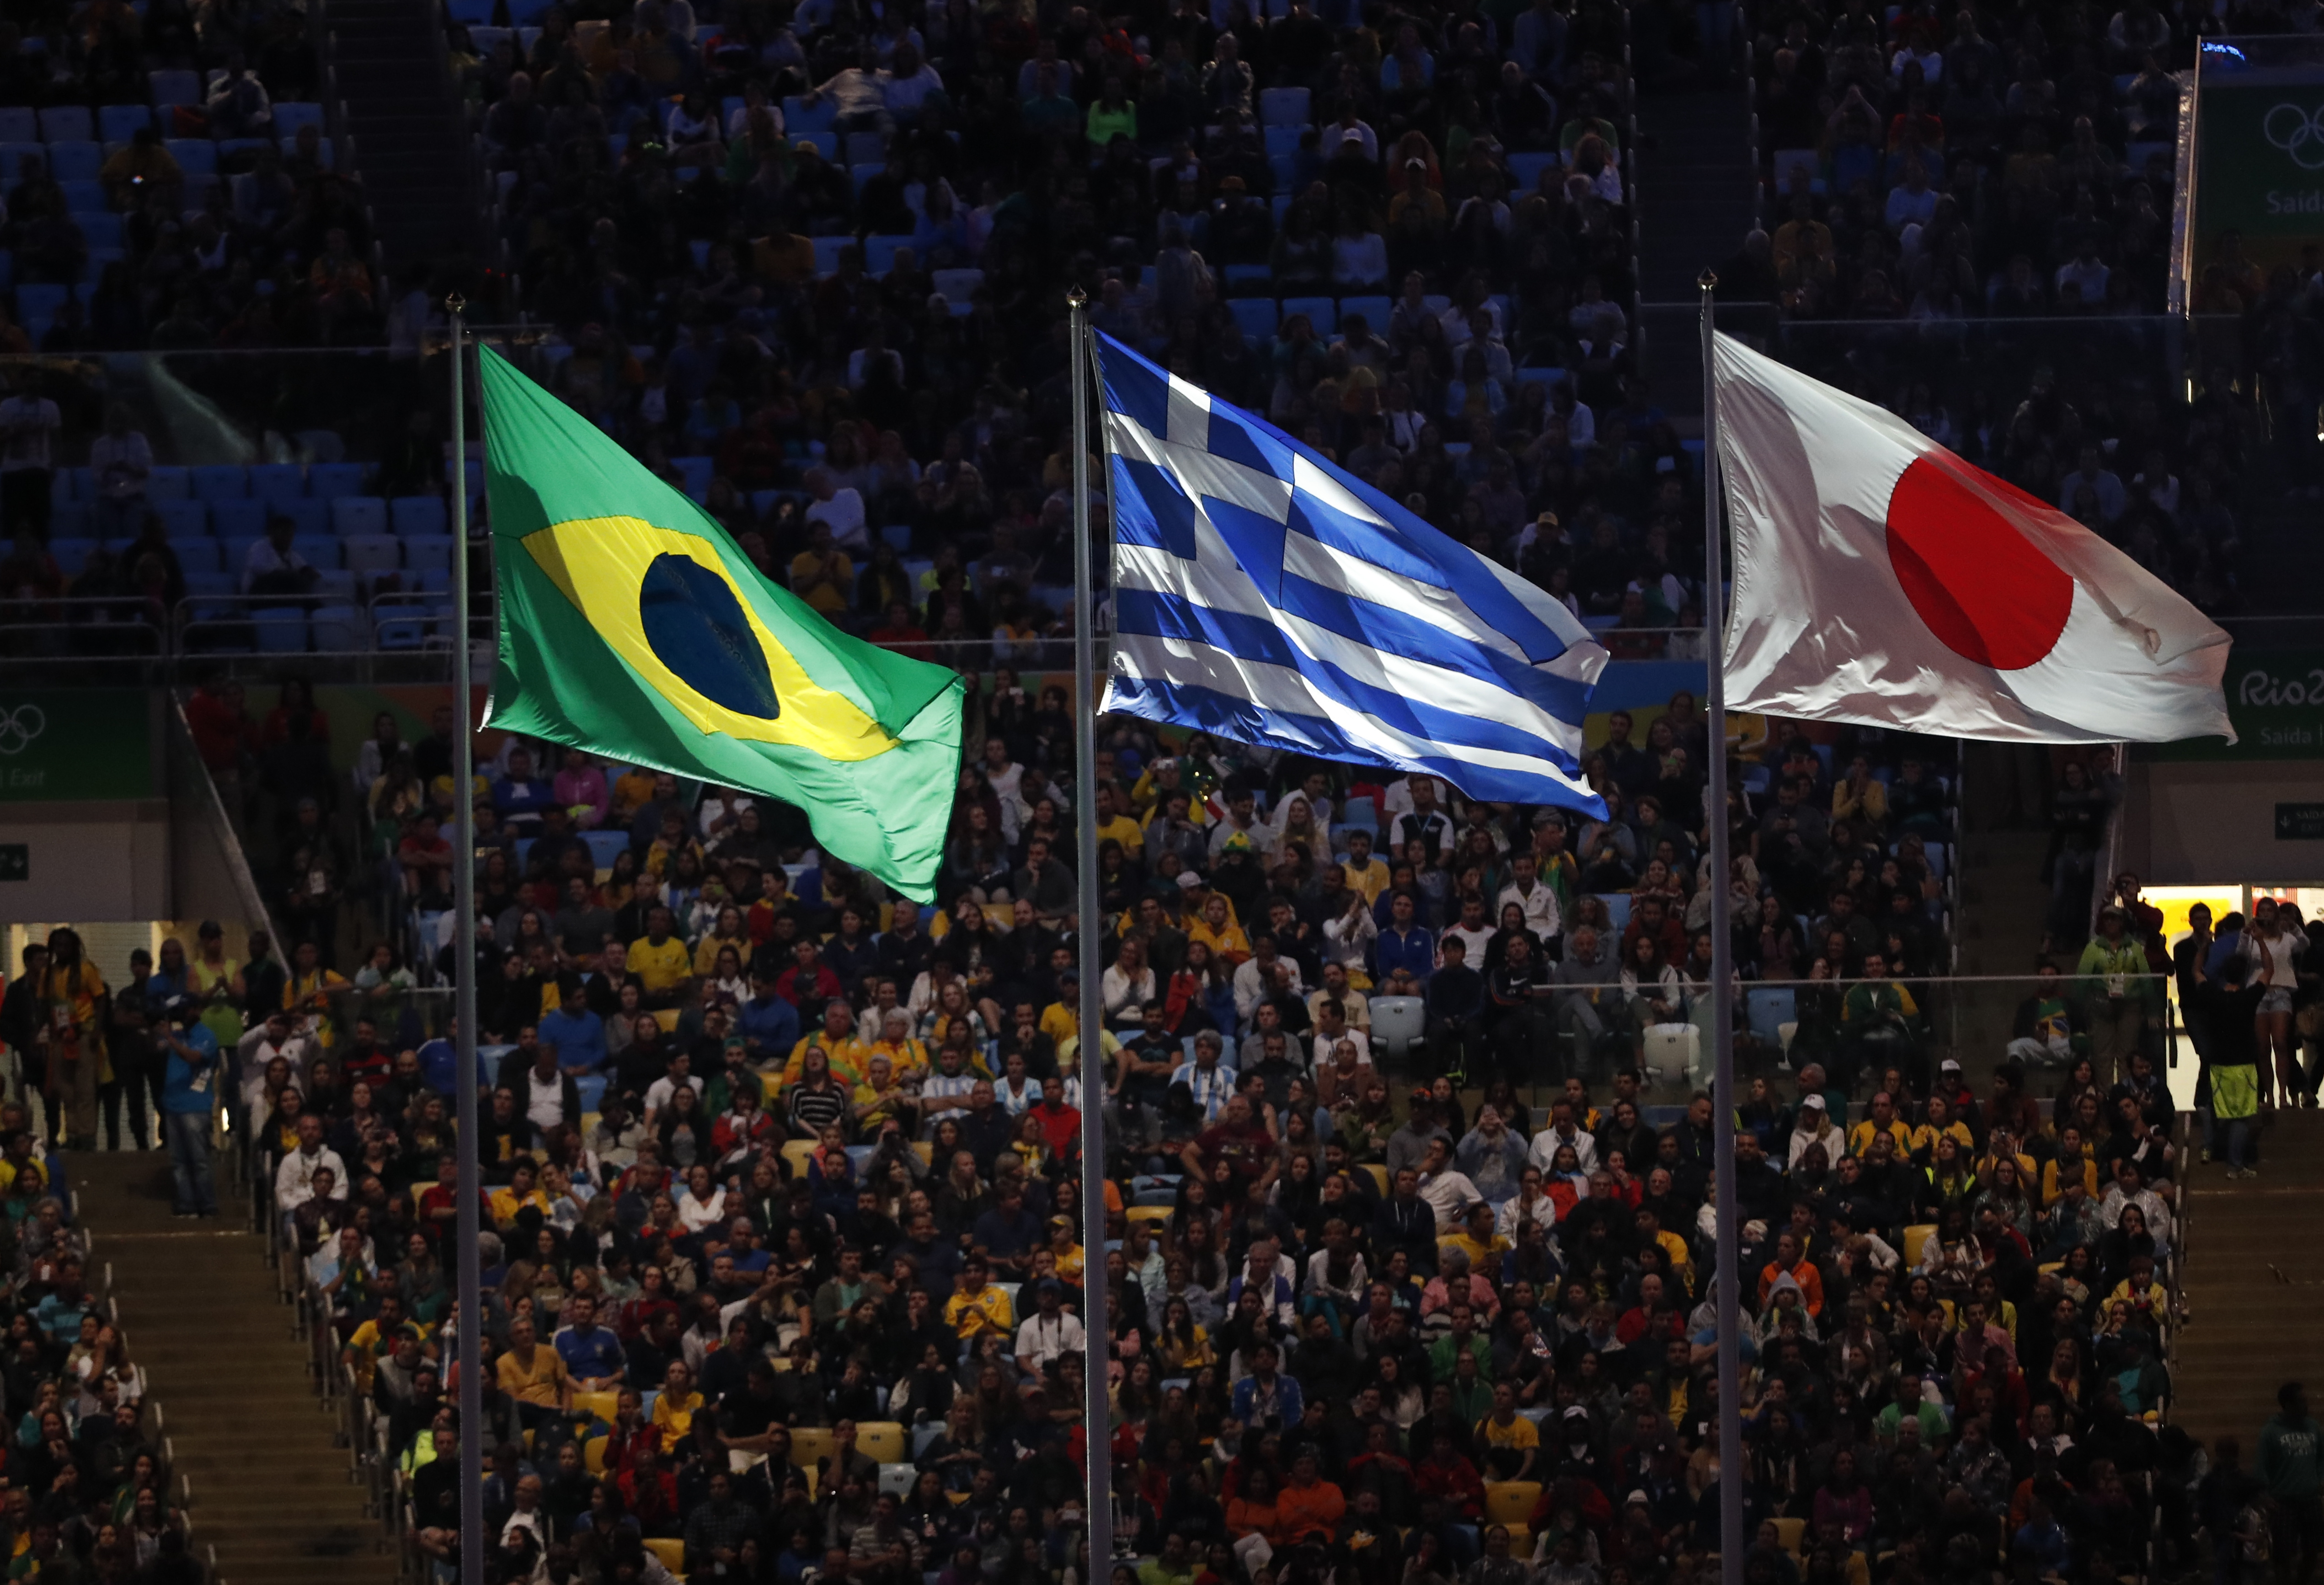 The flags of Brazil, Greece and Japan fly during the closing ceremony for the Summer Olympics inside Maracana stadium in Rio de Janeiro, Brazil, Sunday, Aug. 21, 2016. (AP Photo/Vincent Thian)